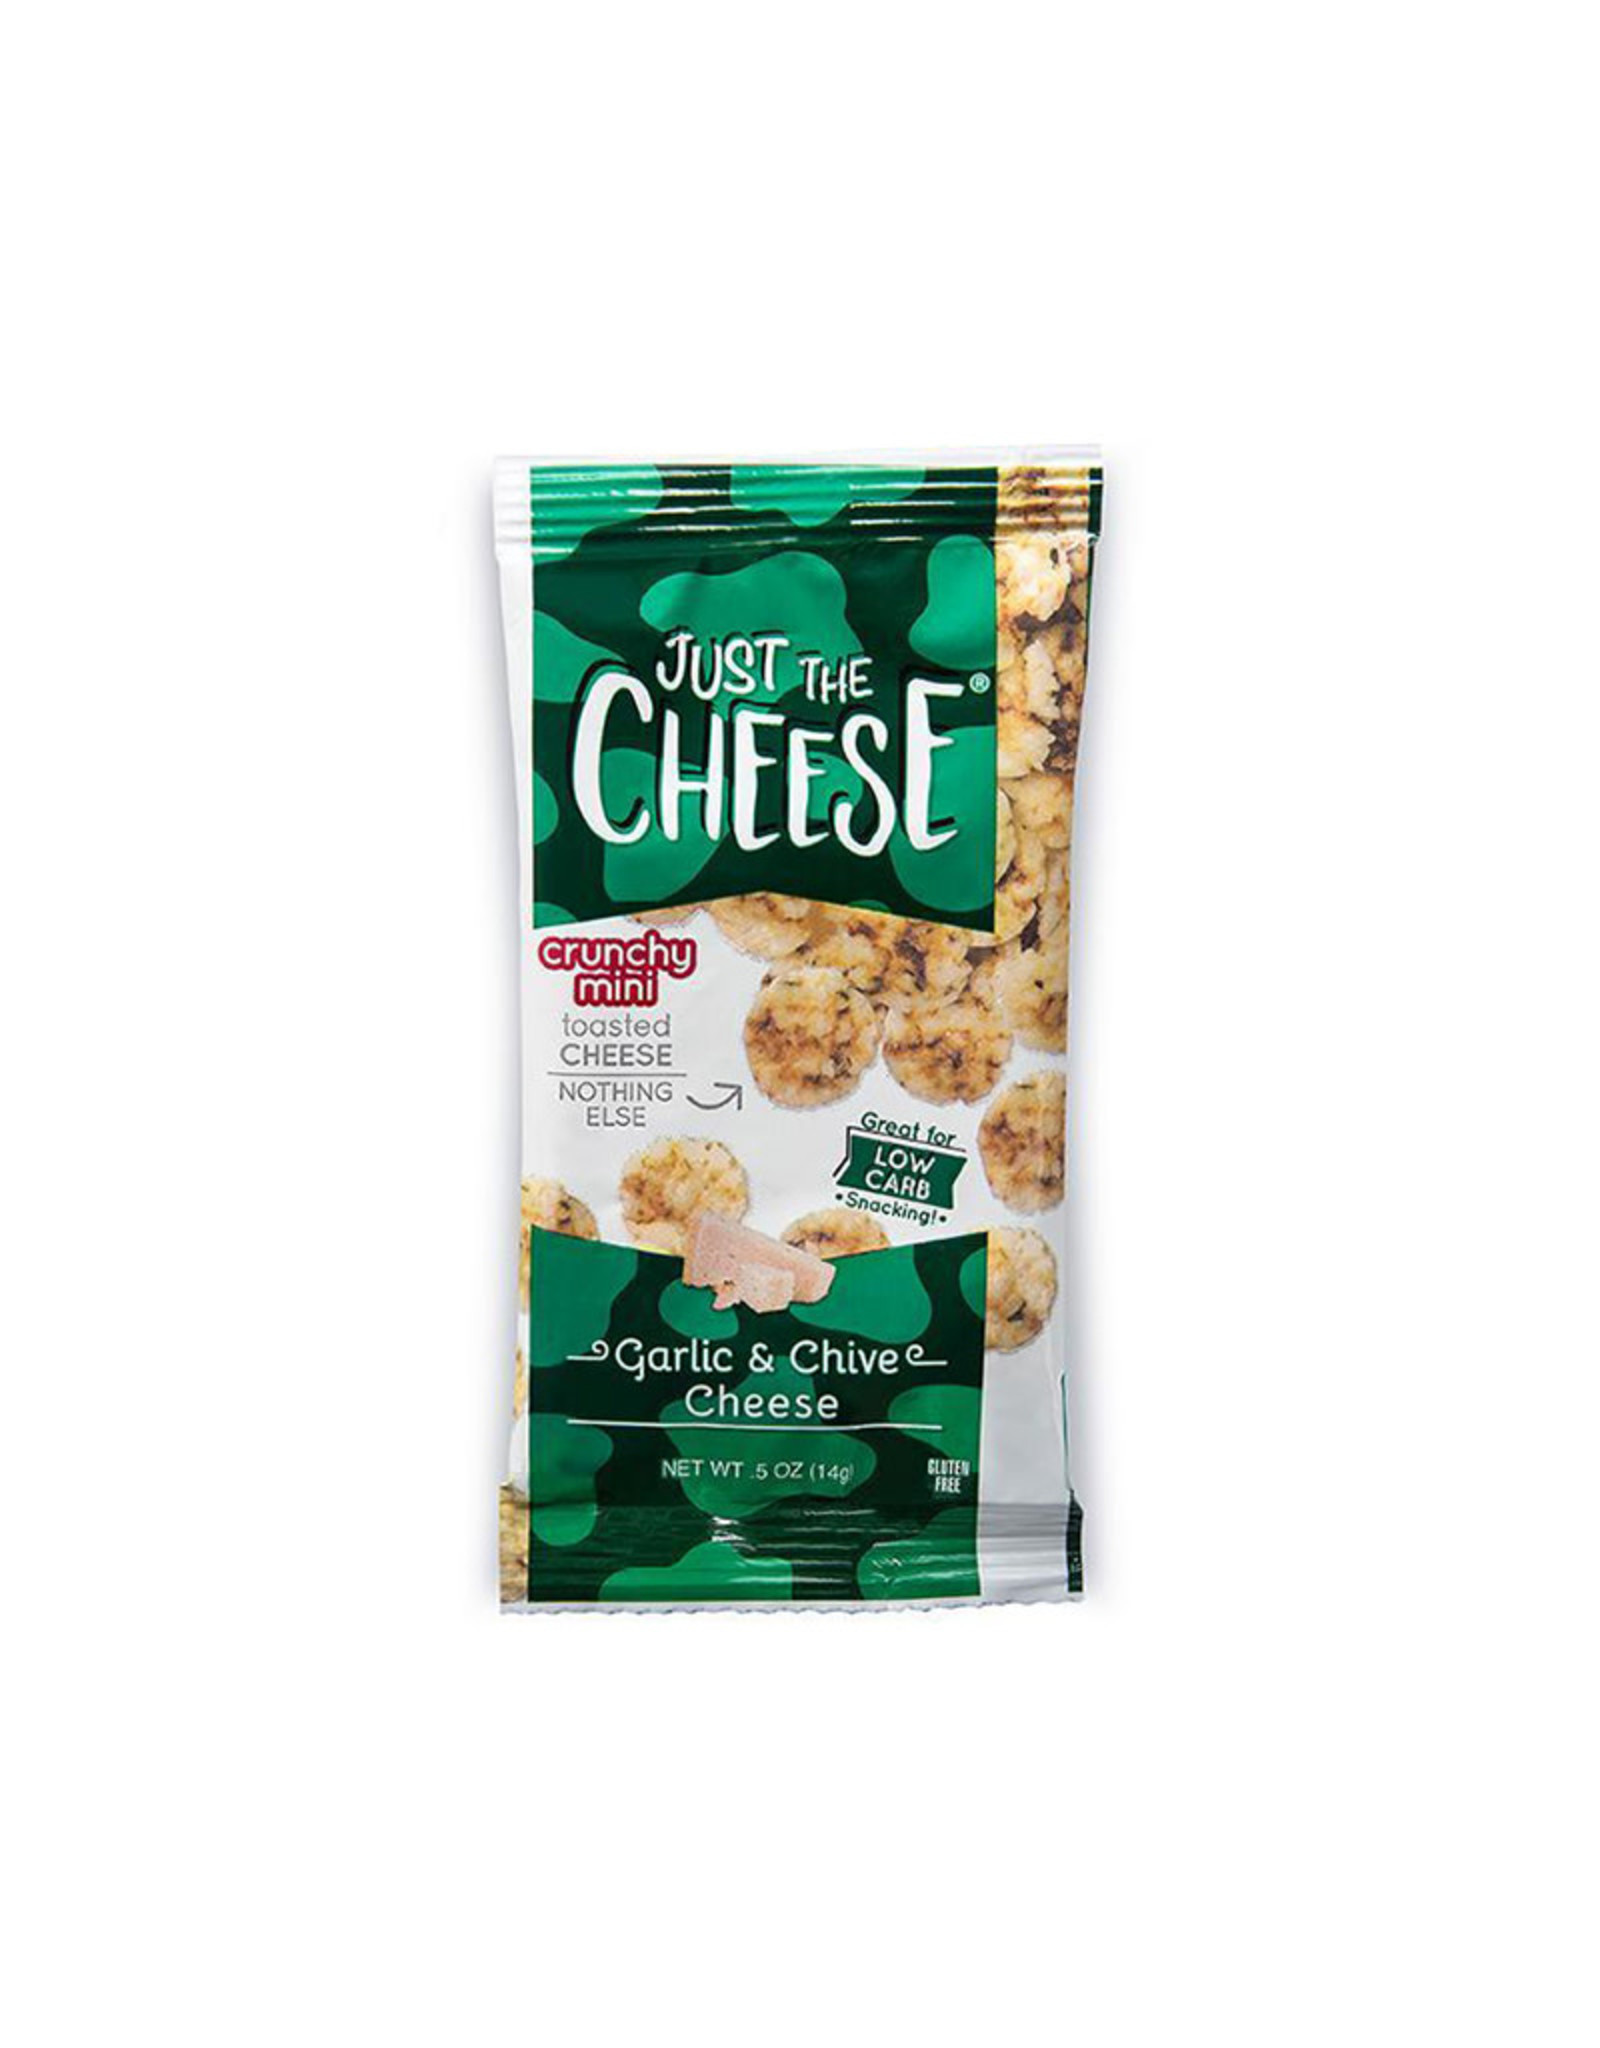 Just the Cheese Just The Cheese - Minis, Garlic & Chive (14g)